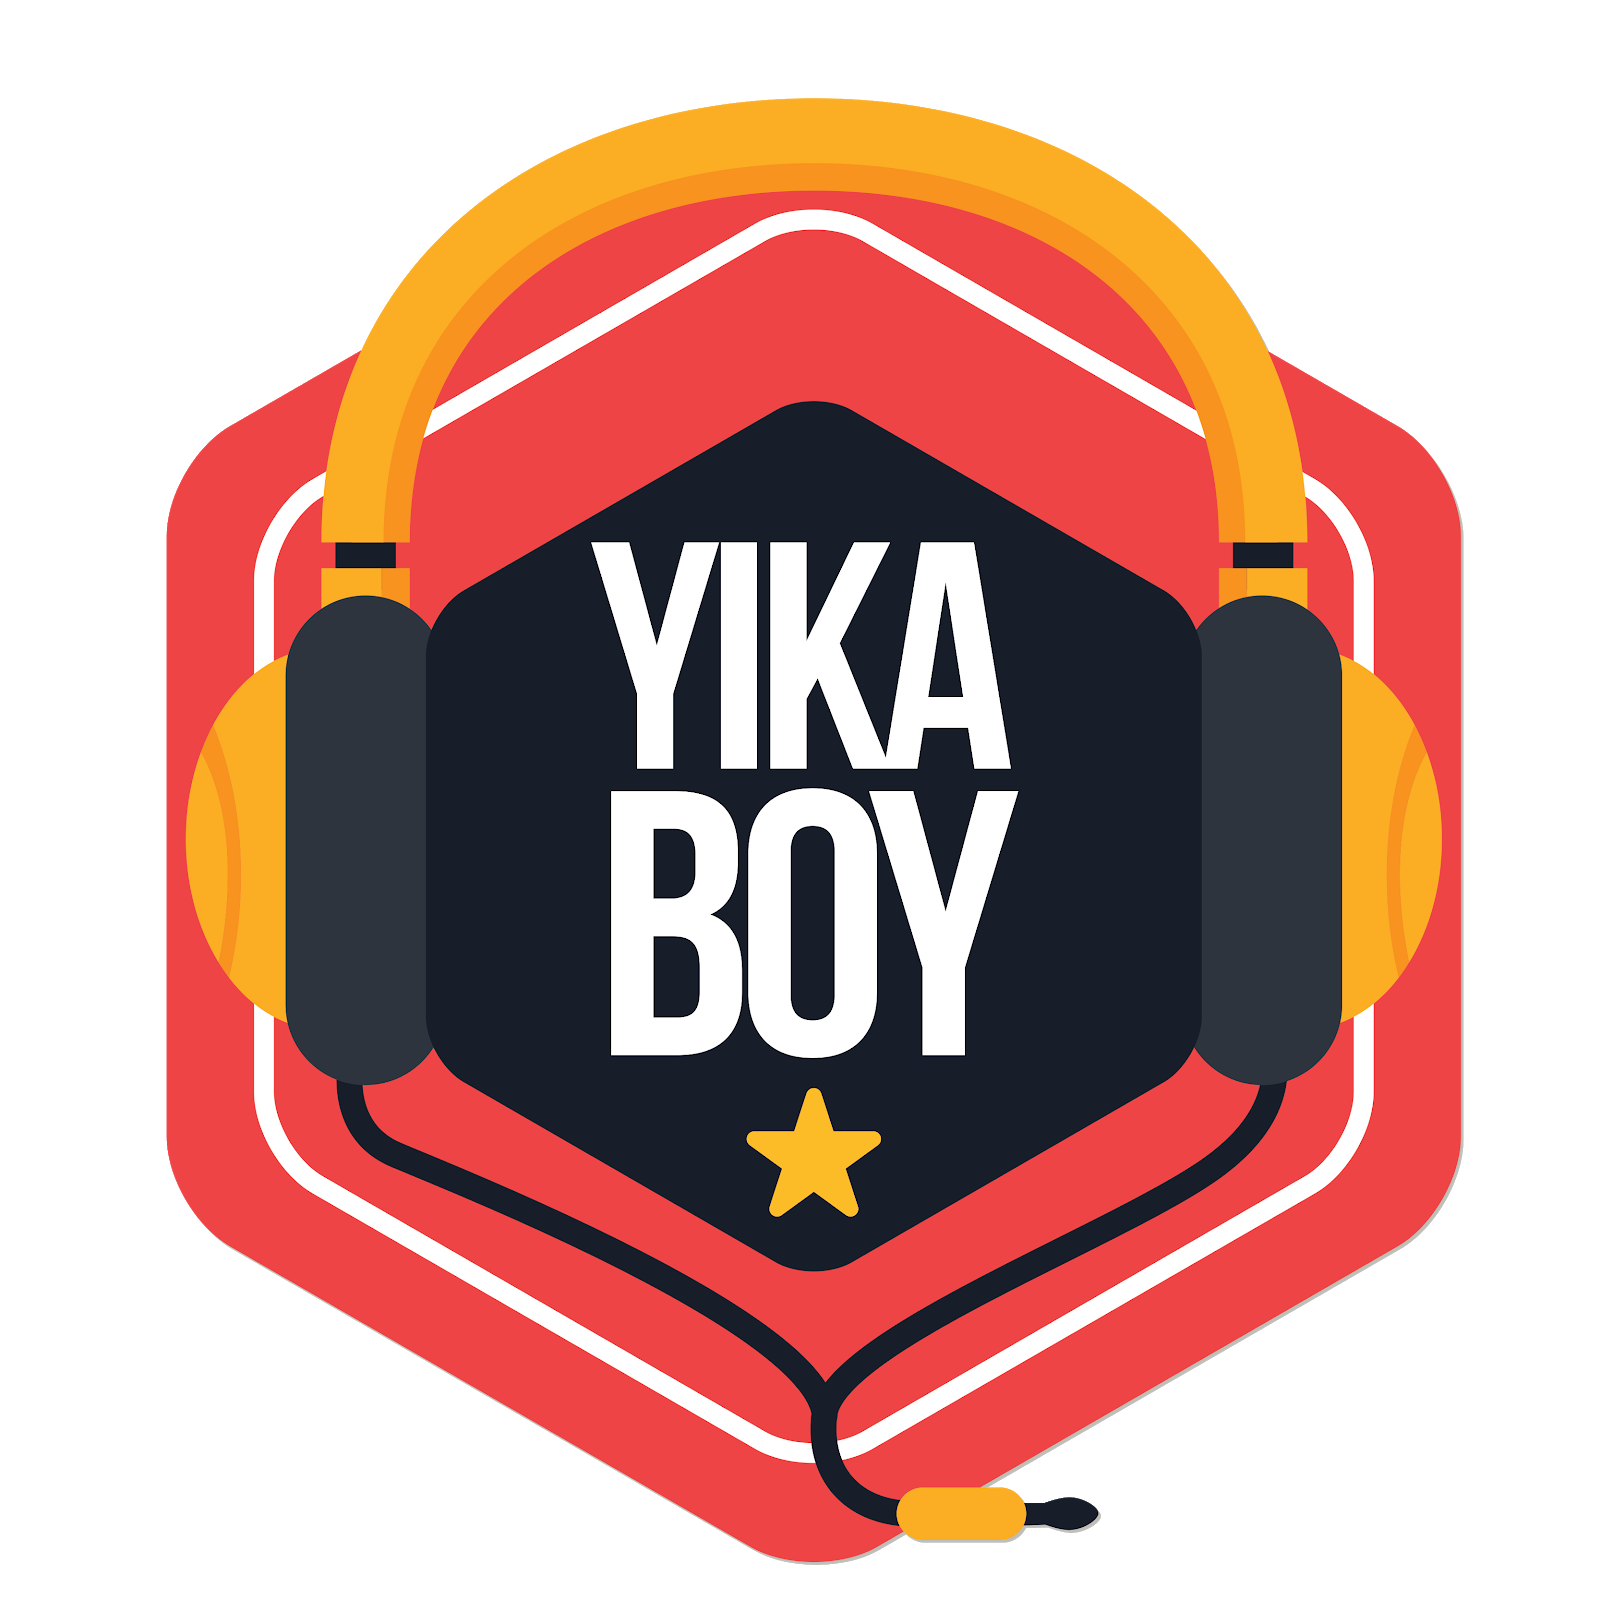 YIKA BOY MUSIC HUB